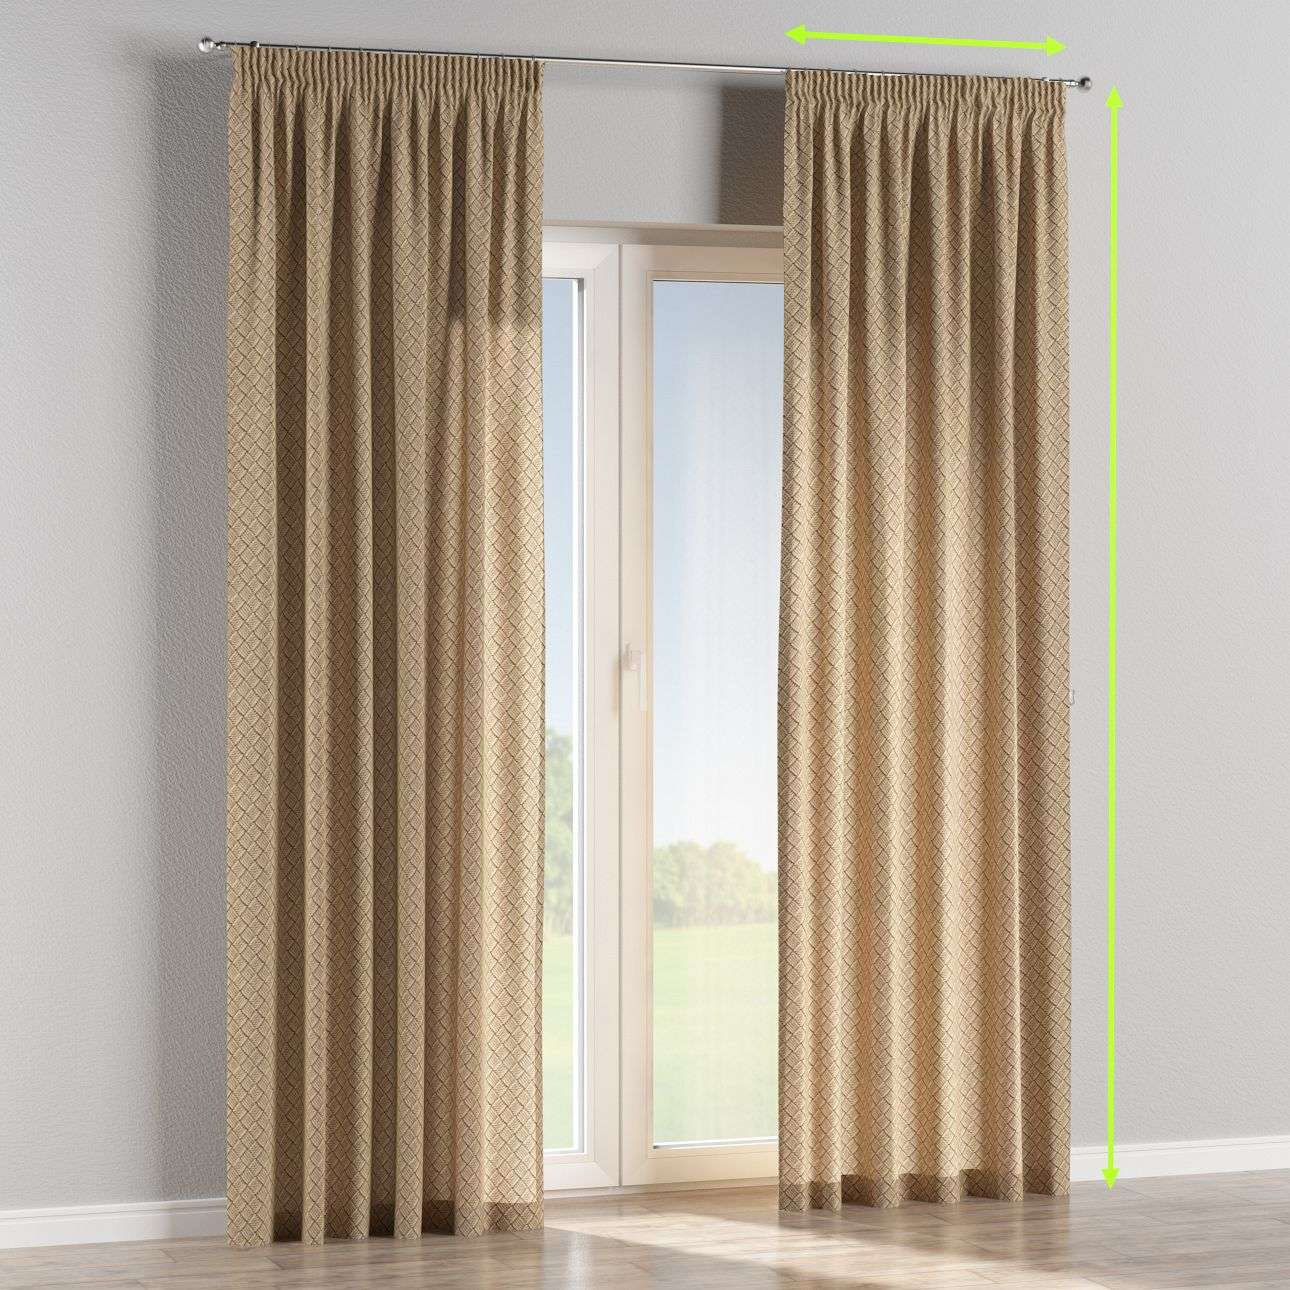 Pencil pleat lined curtains in collection Marina, fabric: 140-17